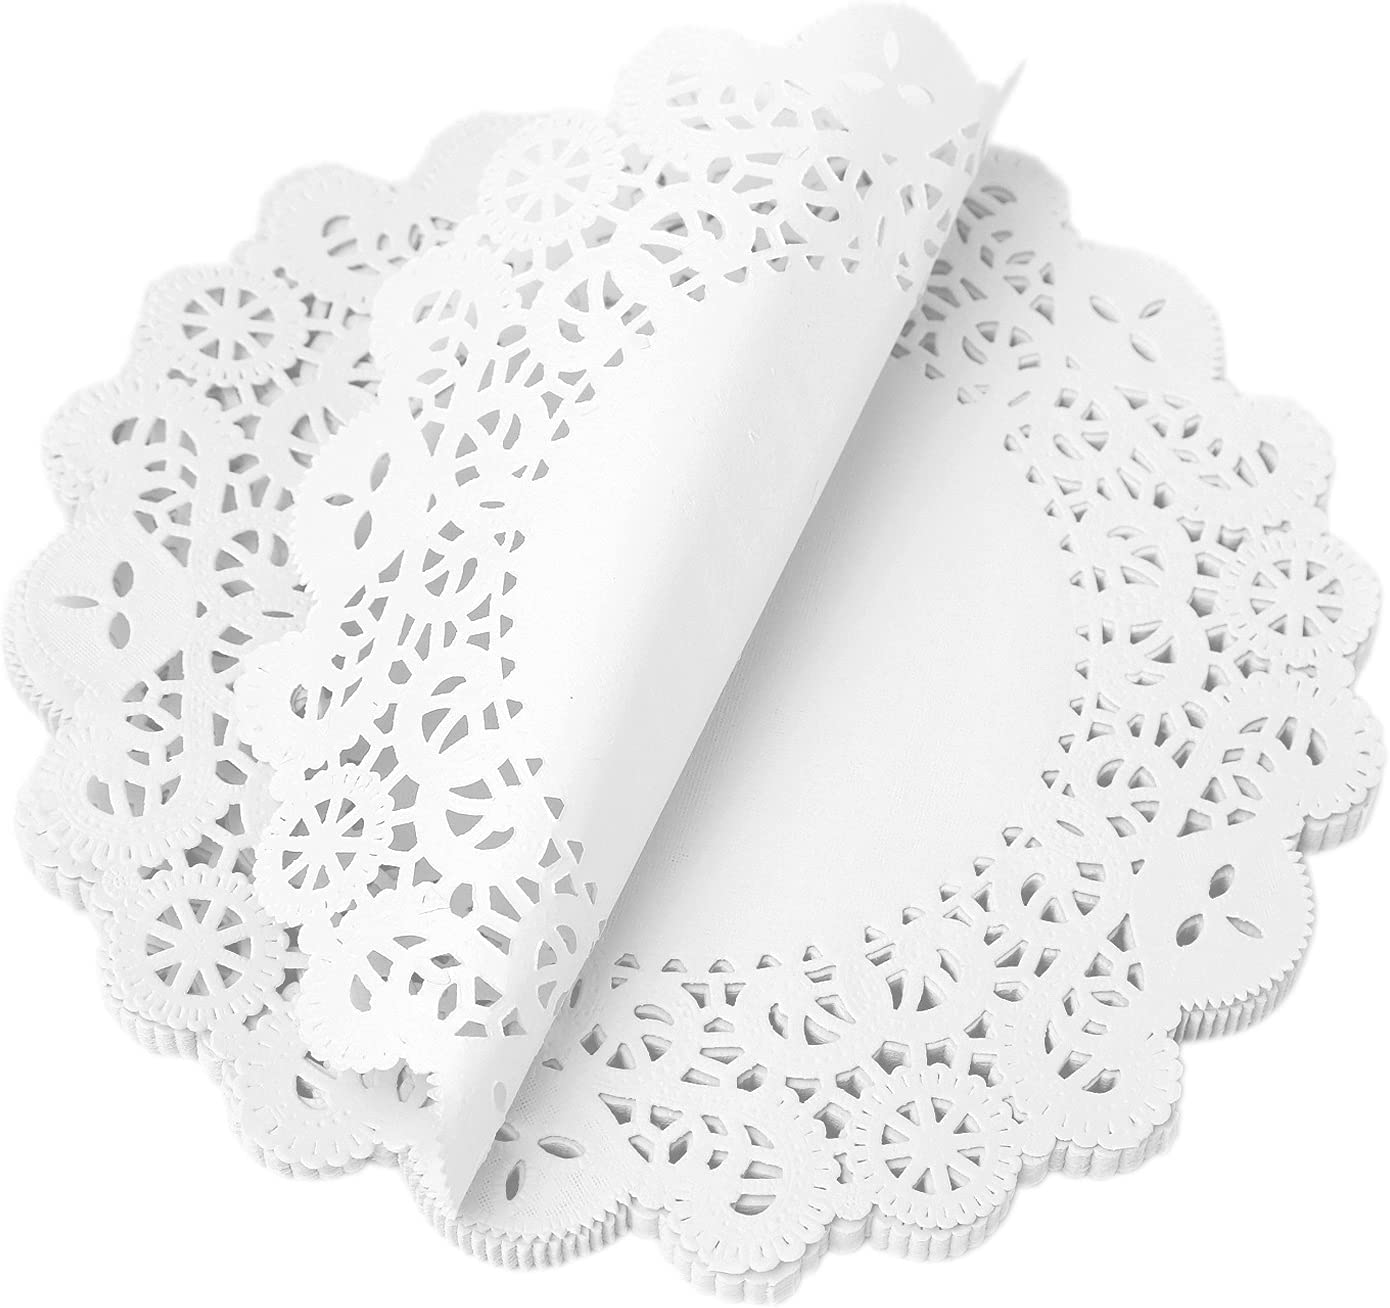 LOmines Paper Lace Doilies 200PCS Round Paper Placemats Doily - Decorative & Disposable for Dessert Fried Food, Wedding Tableware Decoration, Cake Packaging - 8.5